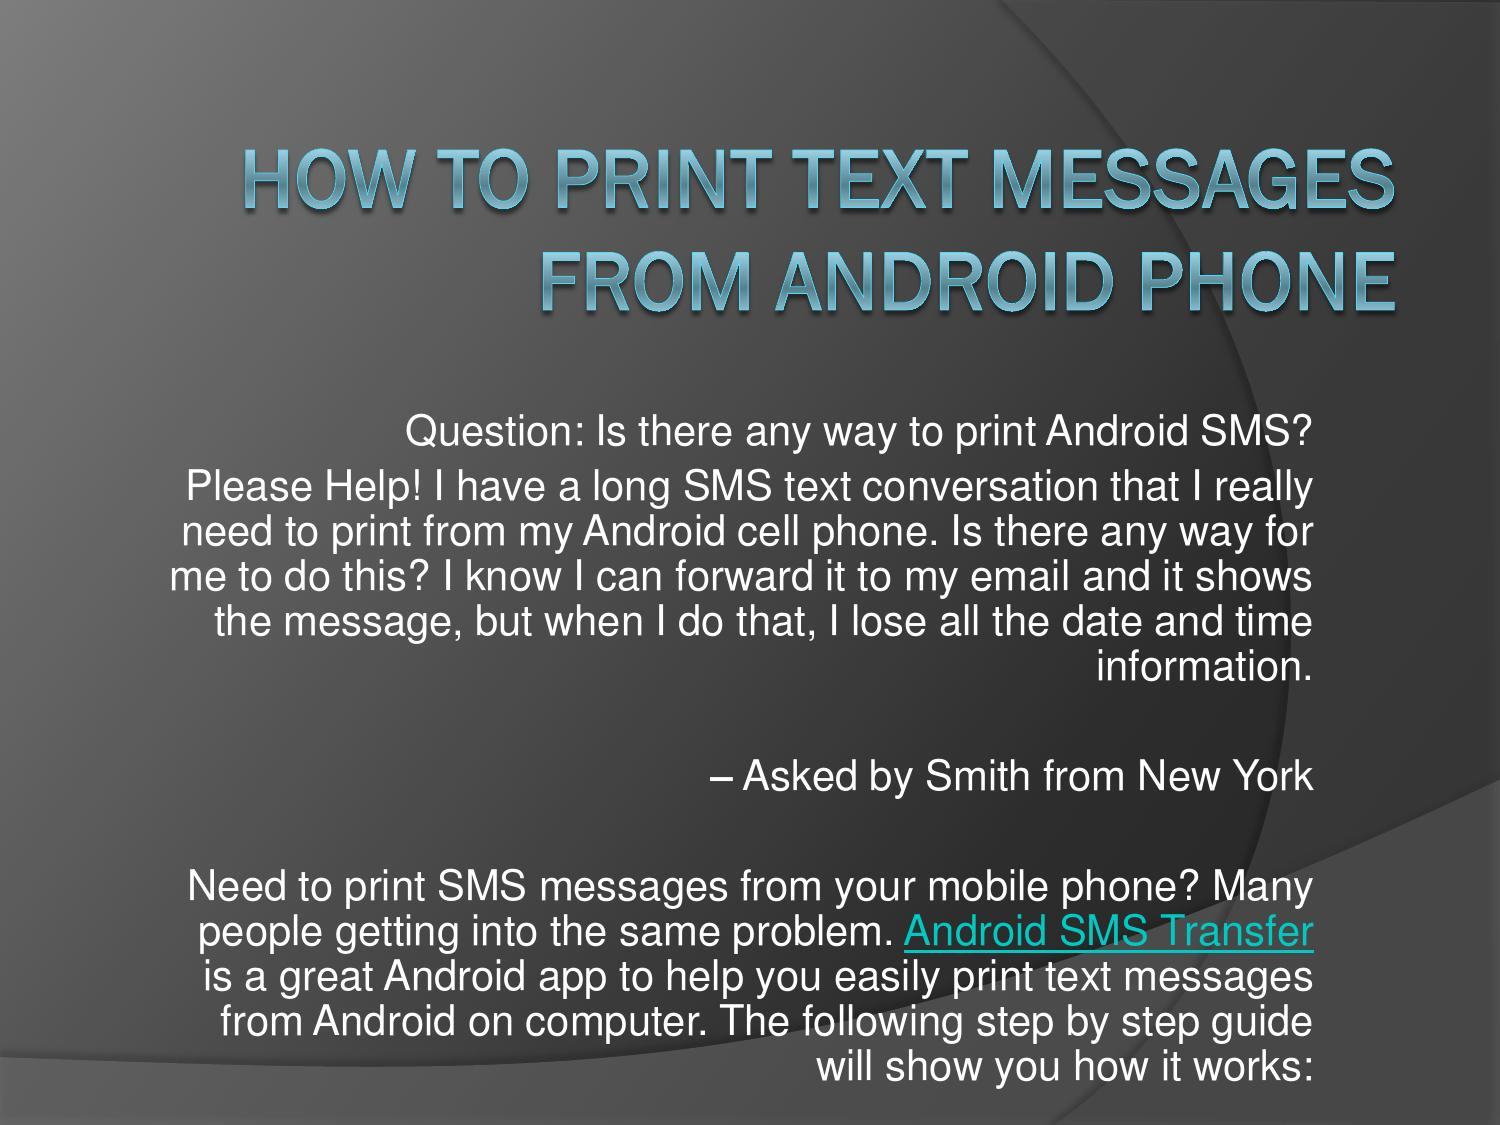 How to print SMS